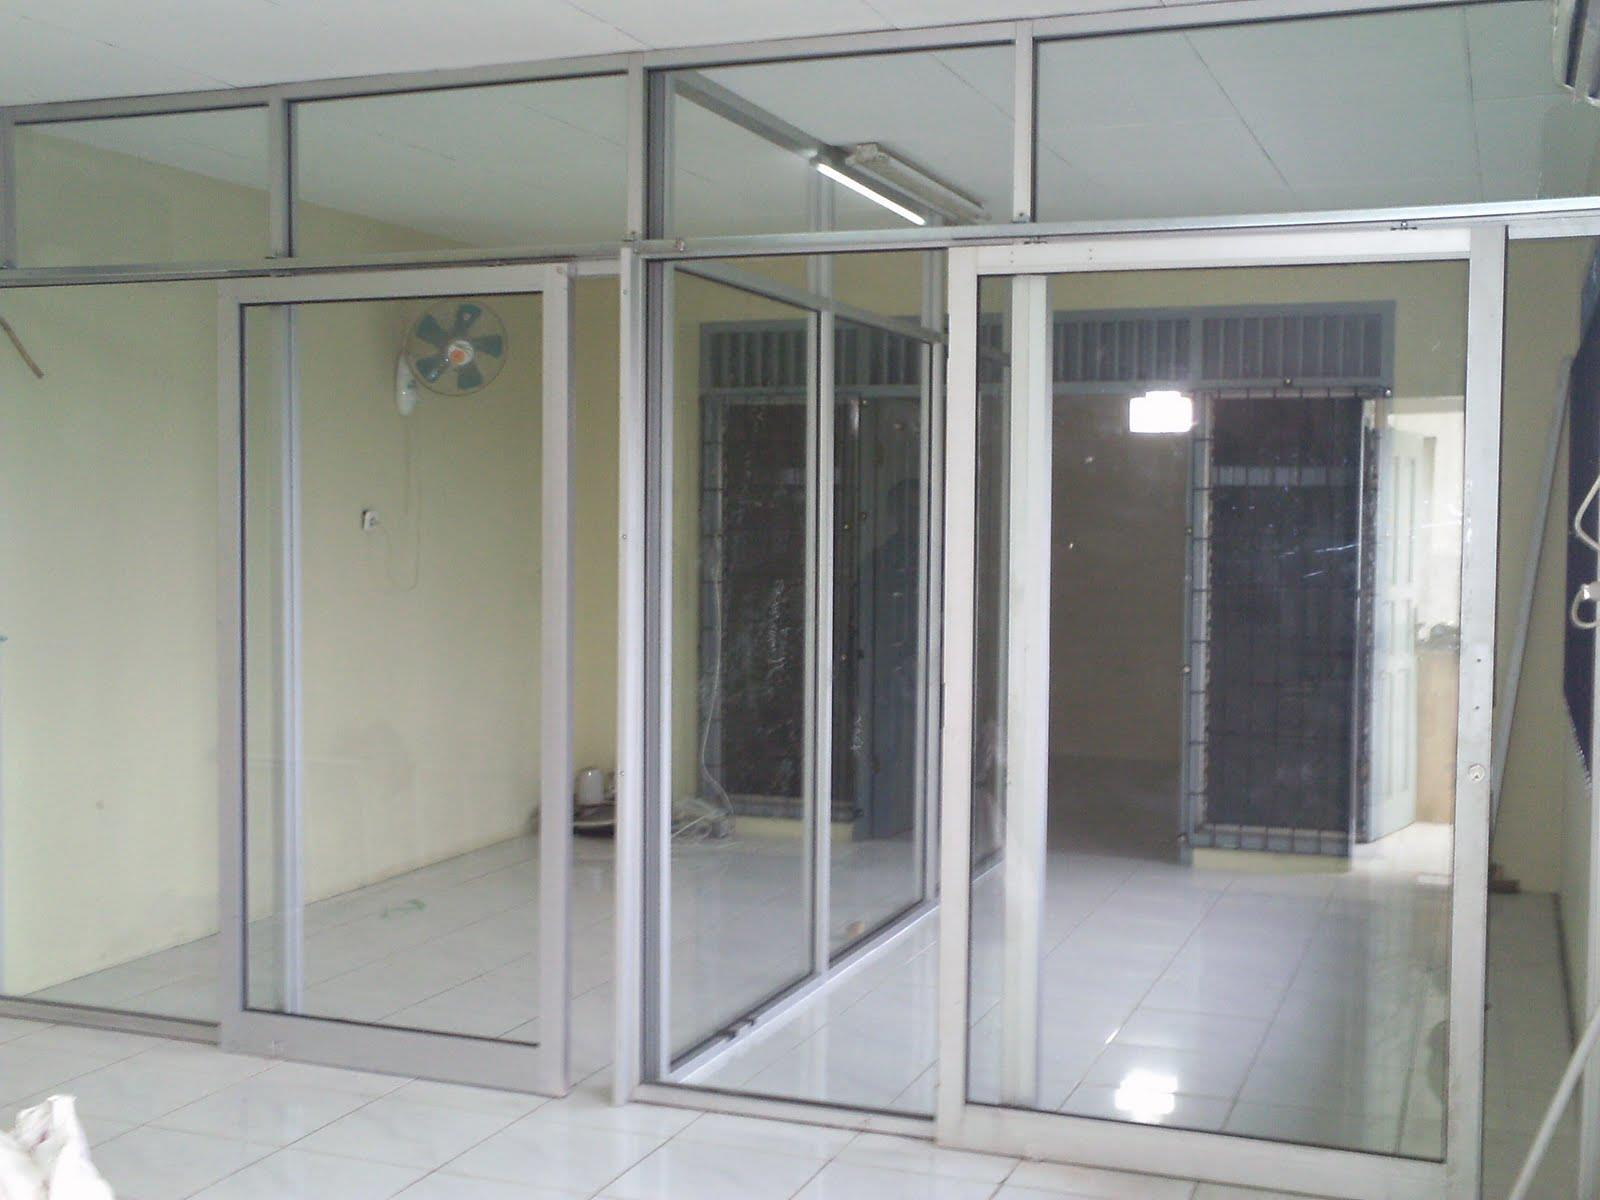 Rumah Aluminium Sell Office Partitions Aluminium Glass From Indonesia By Pt Eterna Multi Kreasi Cheap Price